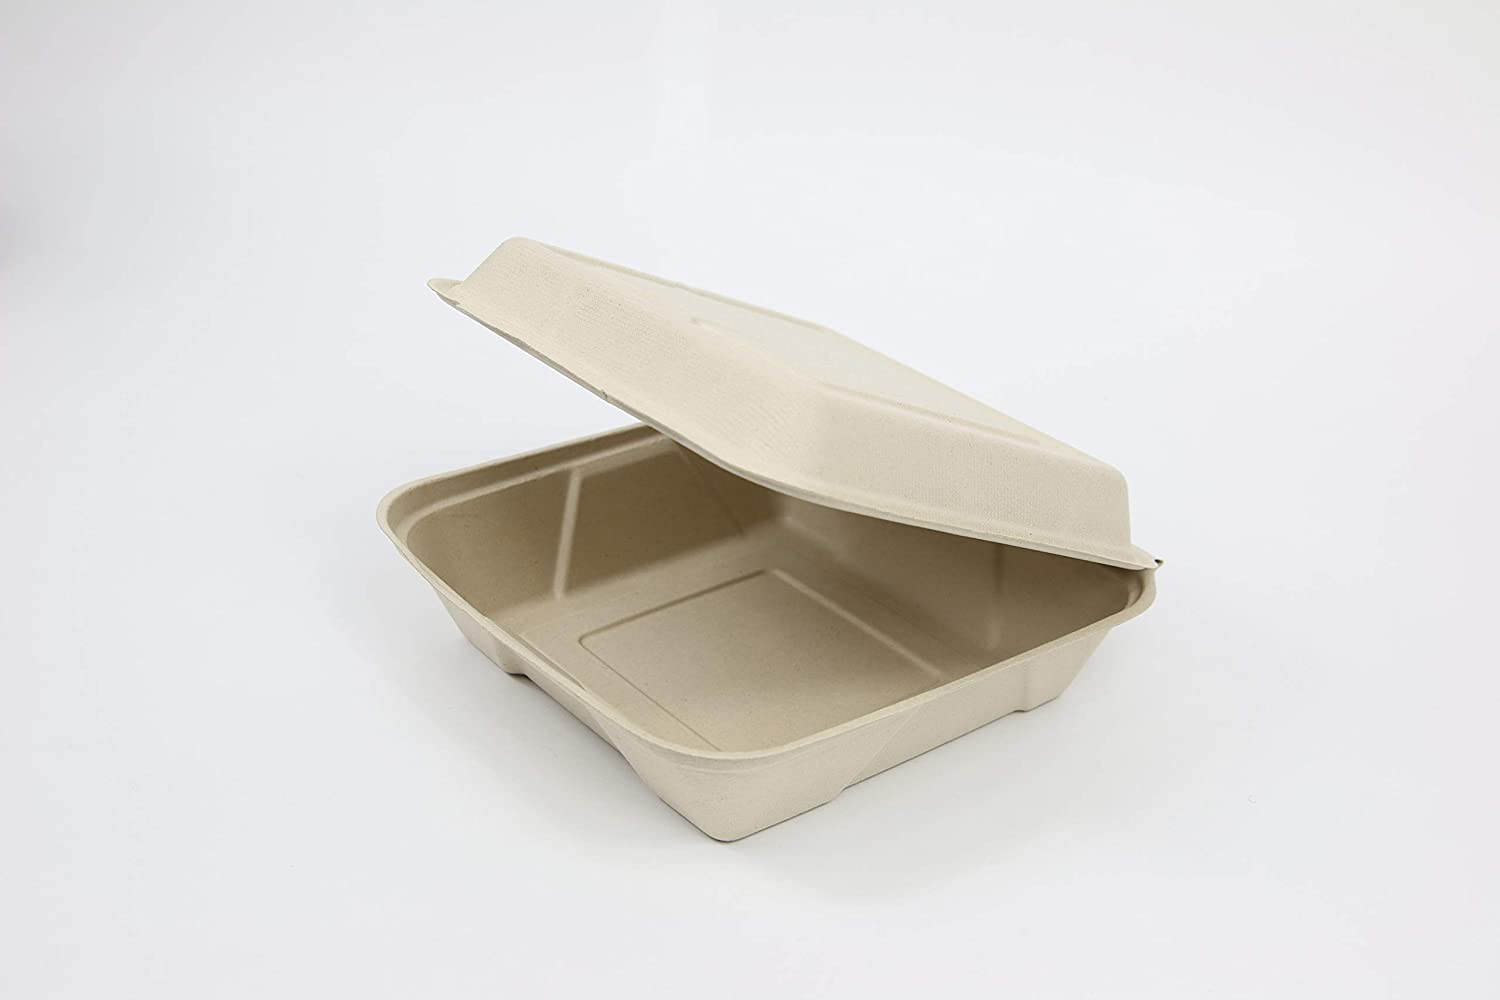 9x 6 Clam Shell Container Total Papers 200 per case NO Bagasse, NO Bleach Compostable Wheat Straw Fiber Tree Free Environmentally Responsible 100/% Biodegradable